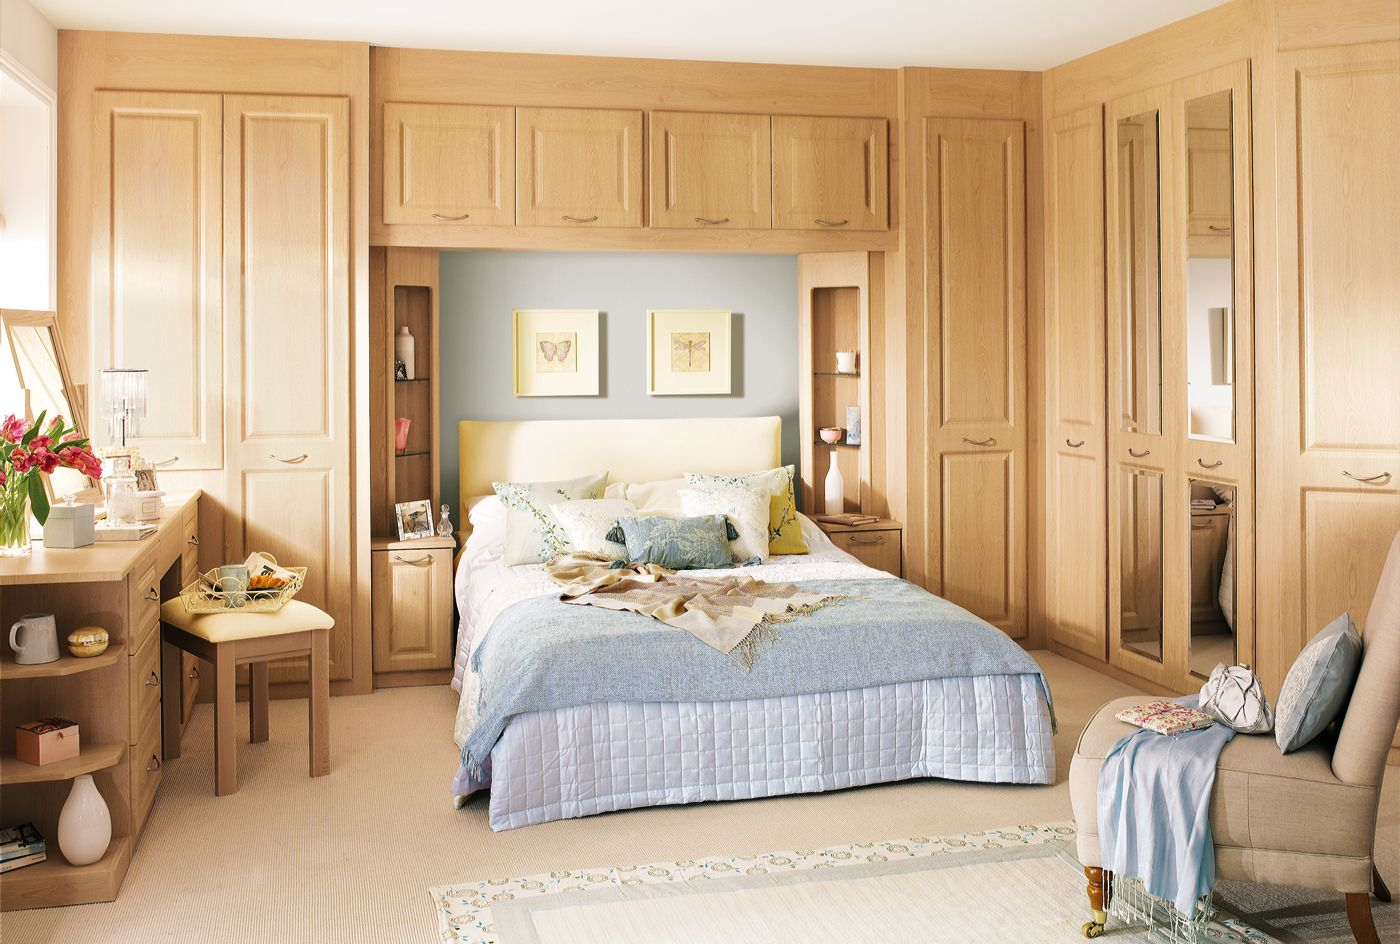 Modern-Wickes-Fitted-Bedroom-Furniture-With-Fitted-Wardrobes -Around-Bed-For-Cozy-Bedroom-Design